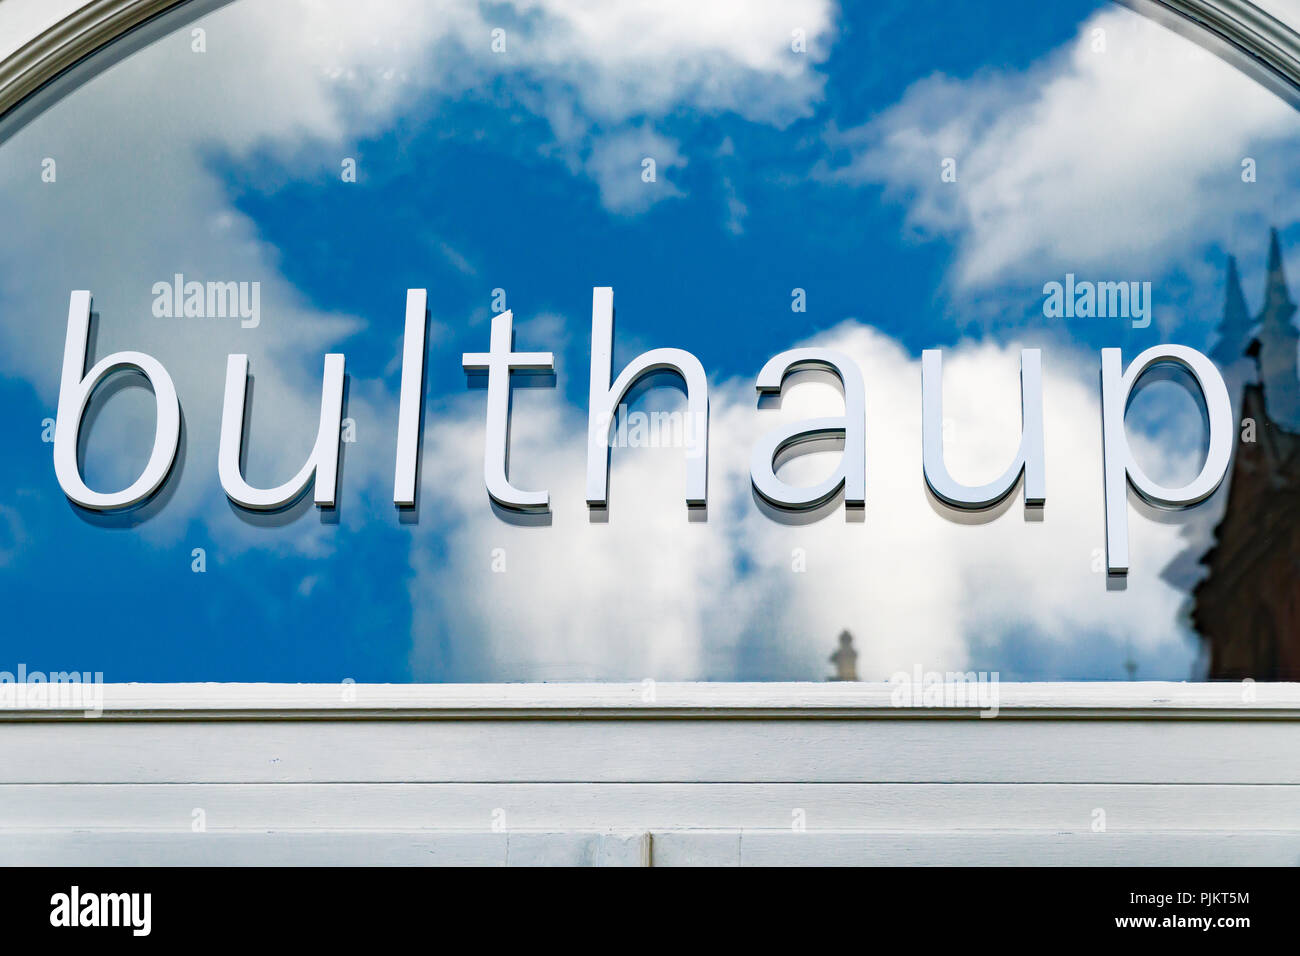 Wiesbaden germany june 03 2018 buldhaup logo on a facade buldhaup is a german kitchen furniture store